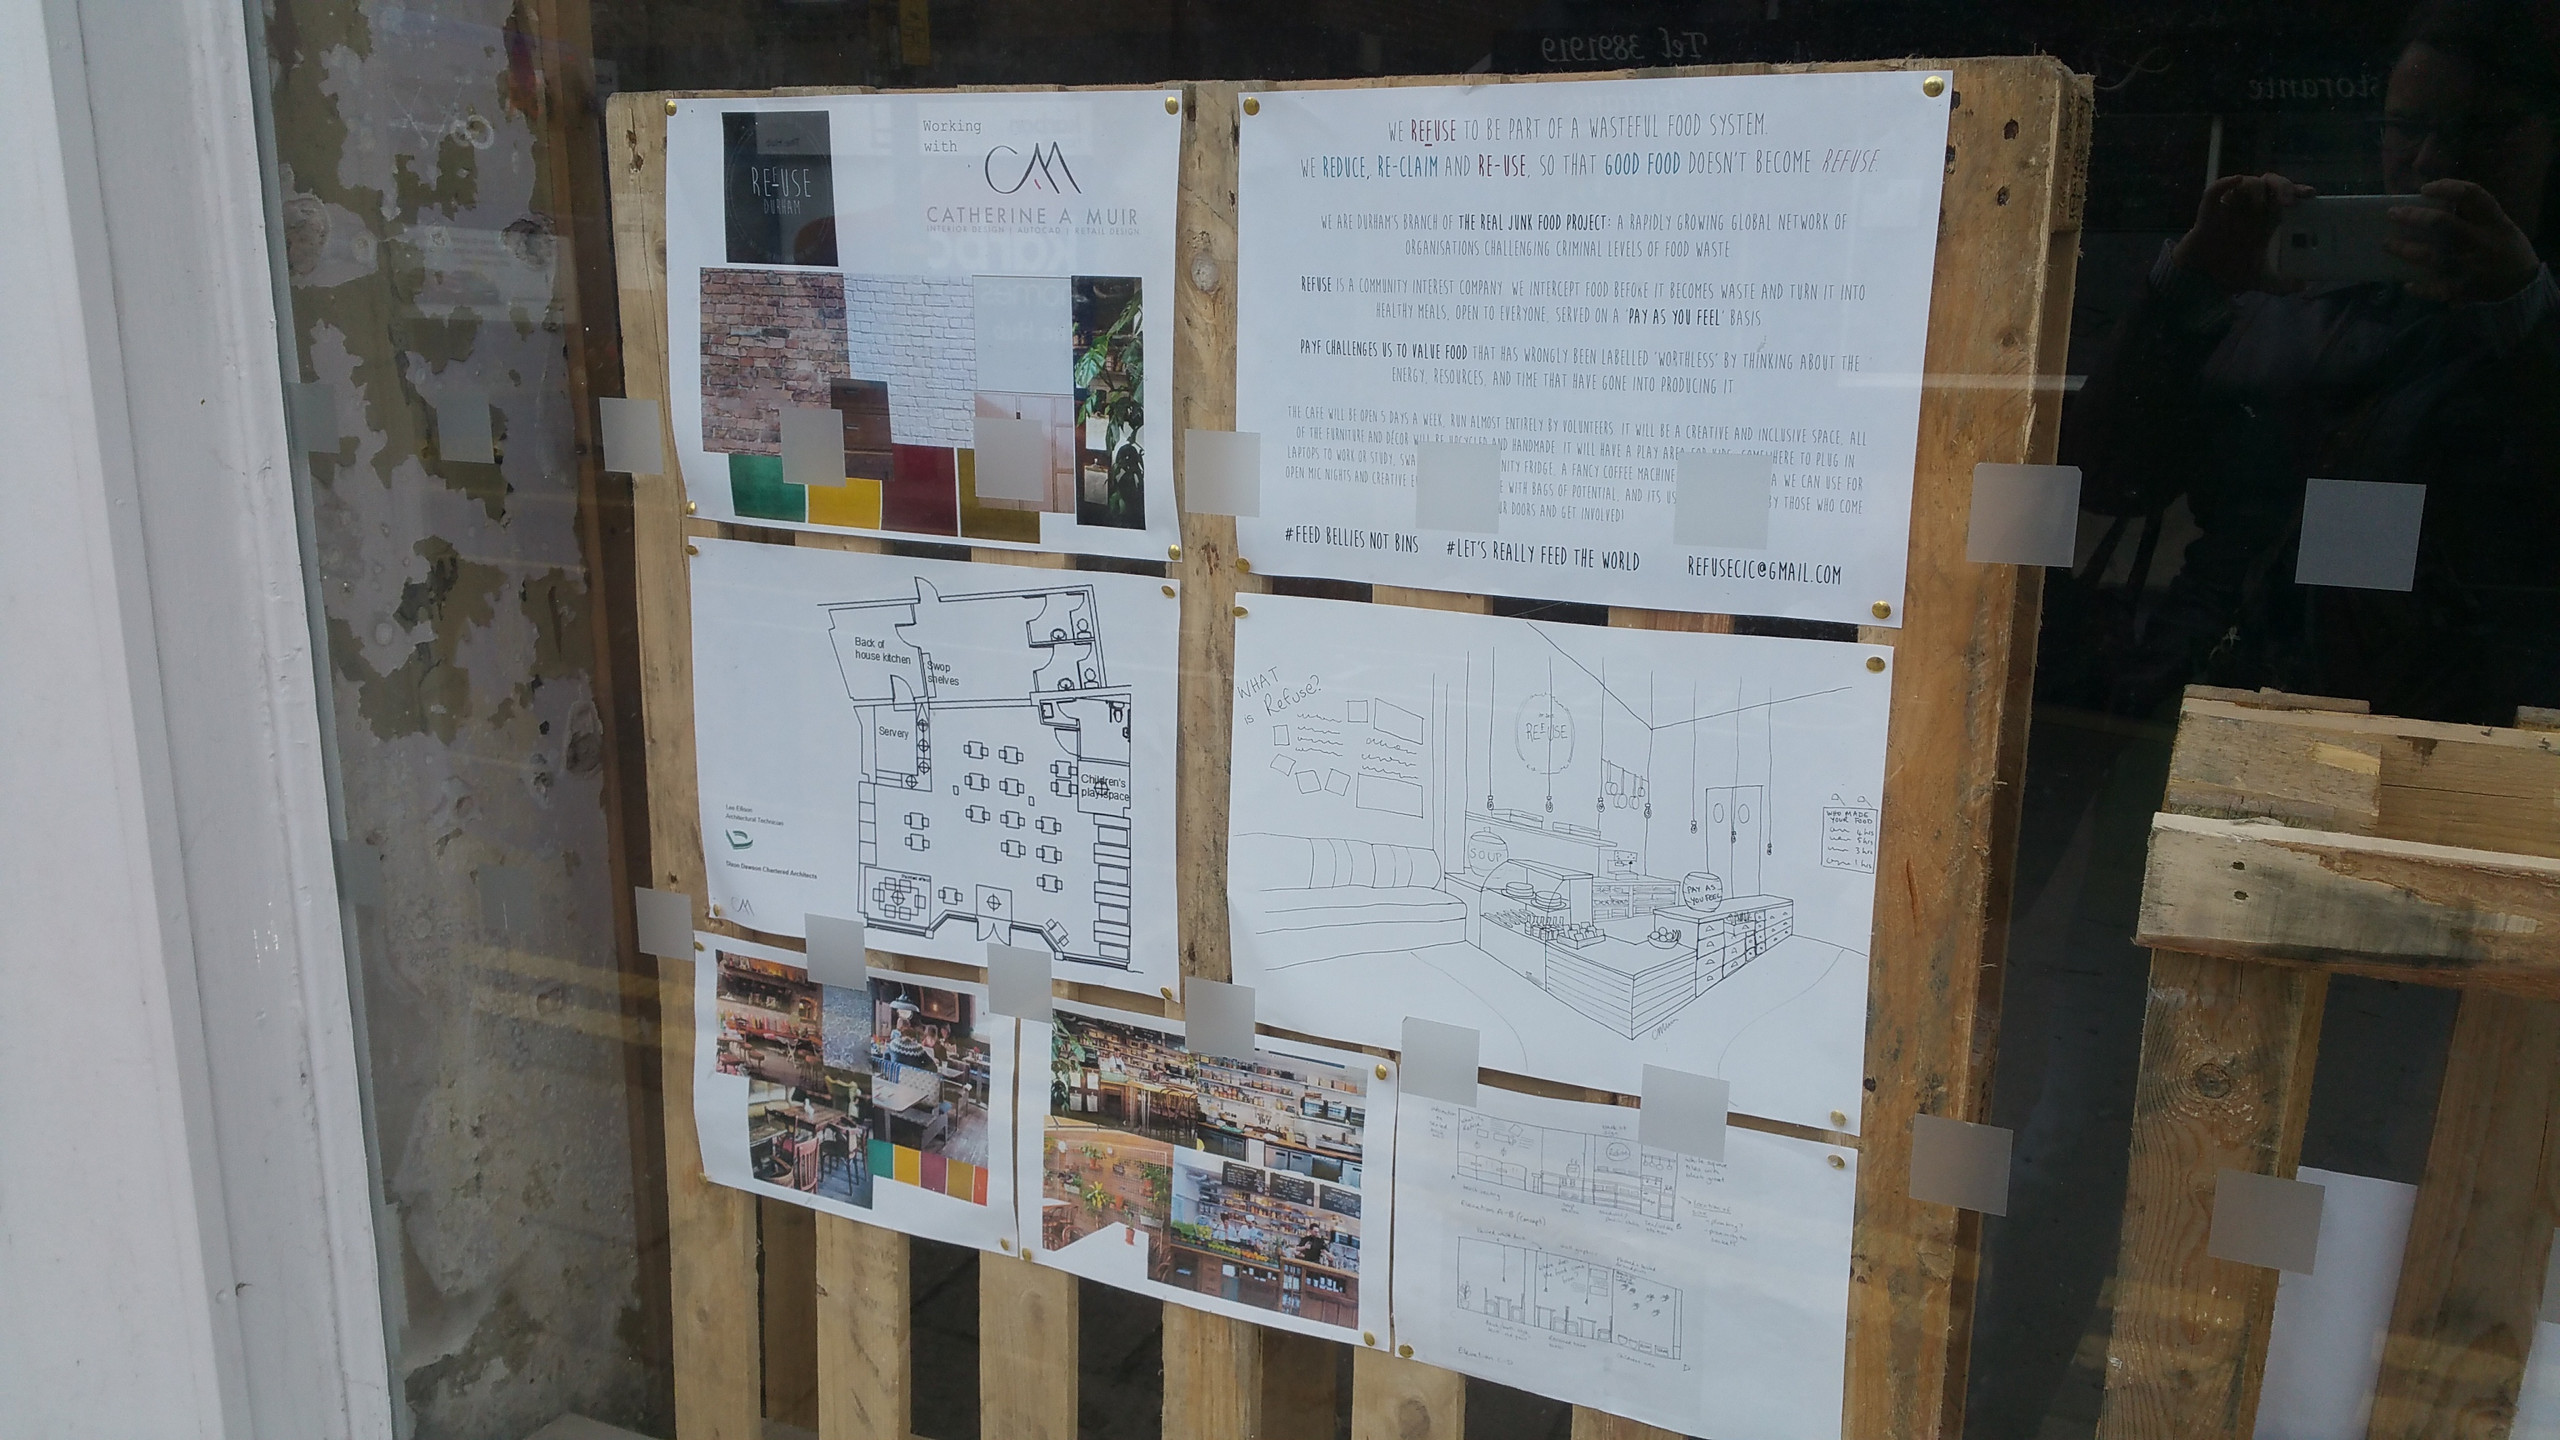 The plans on display in the window